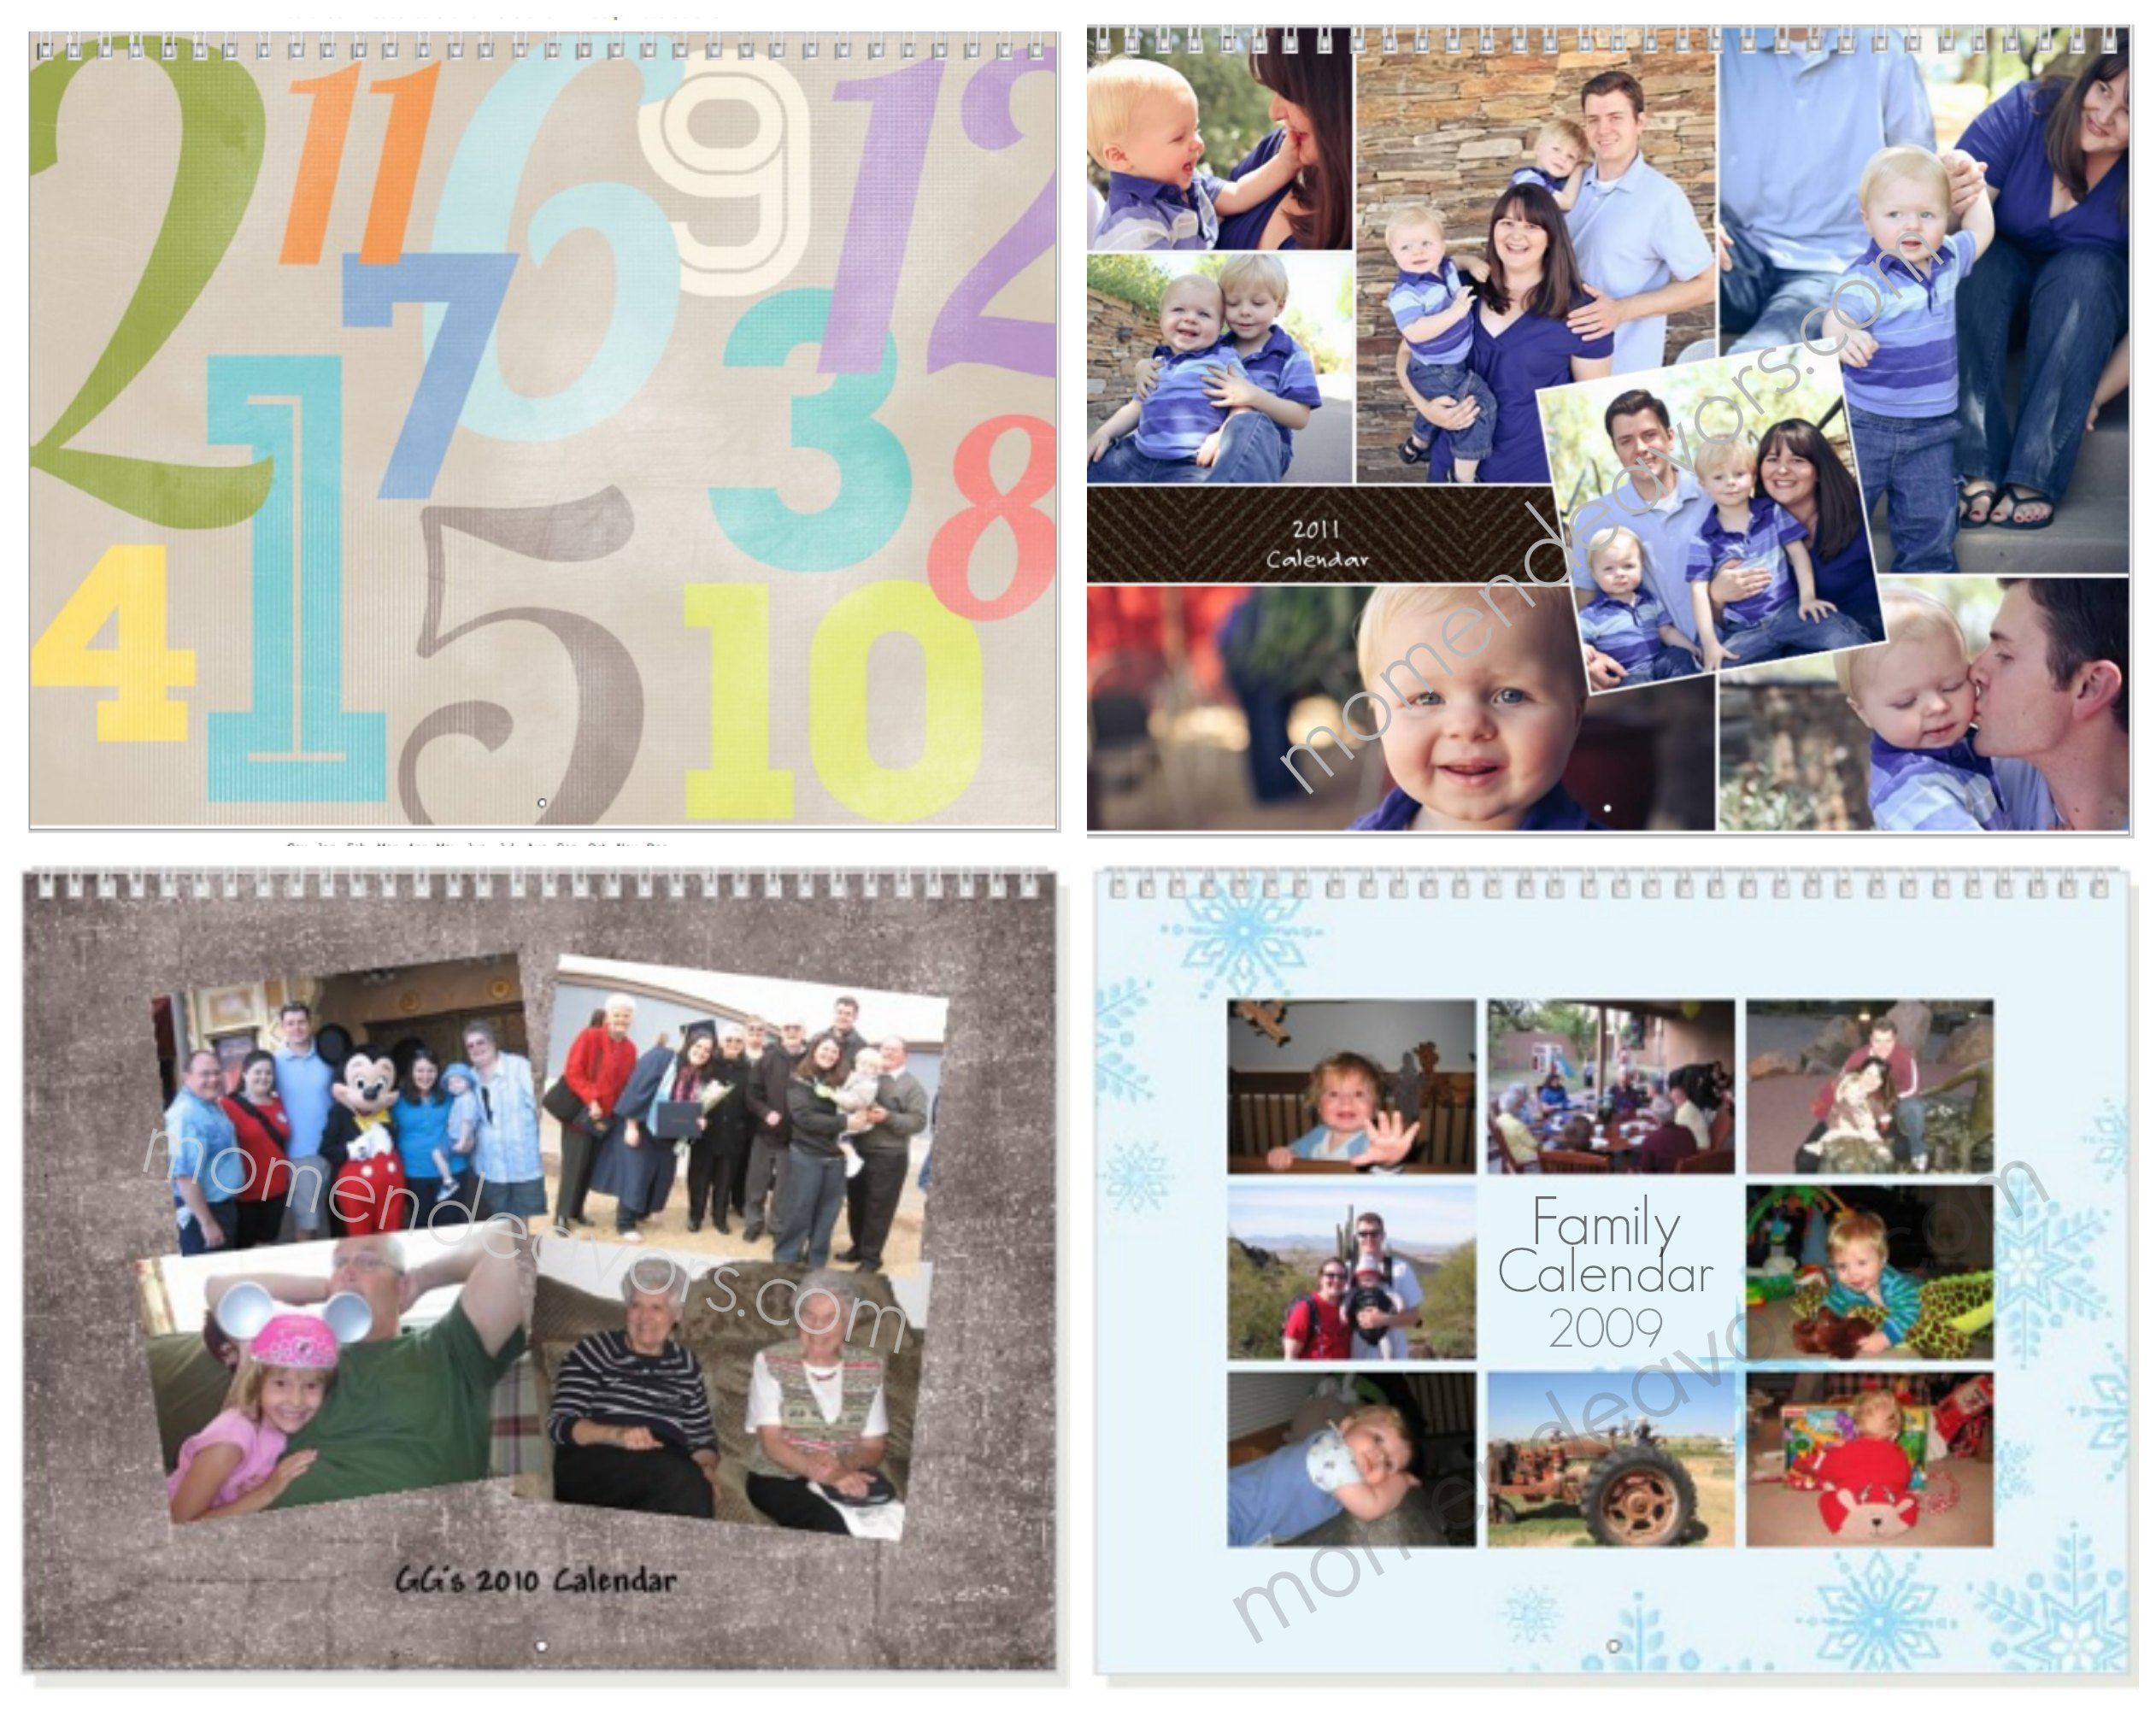 shutterfly calendars a christmas gift tradition giveaway